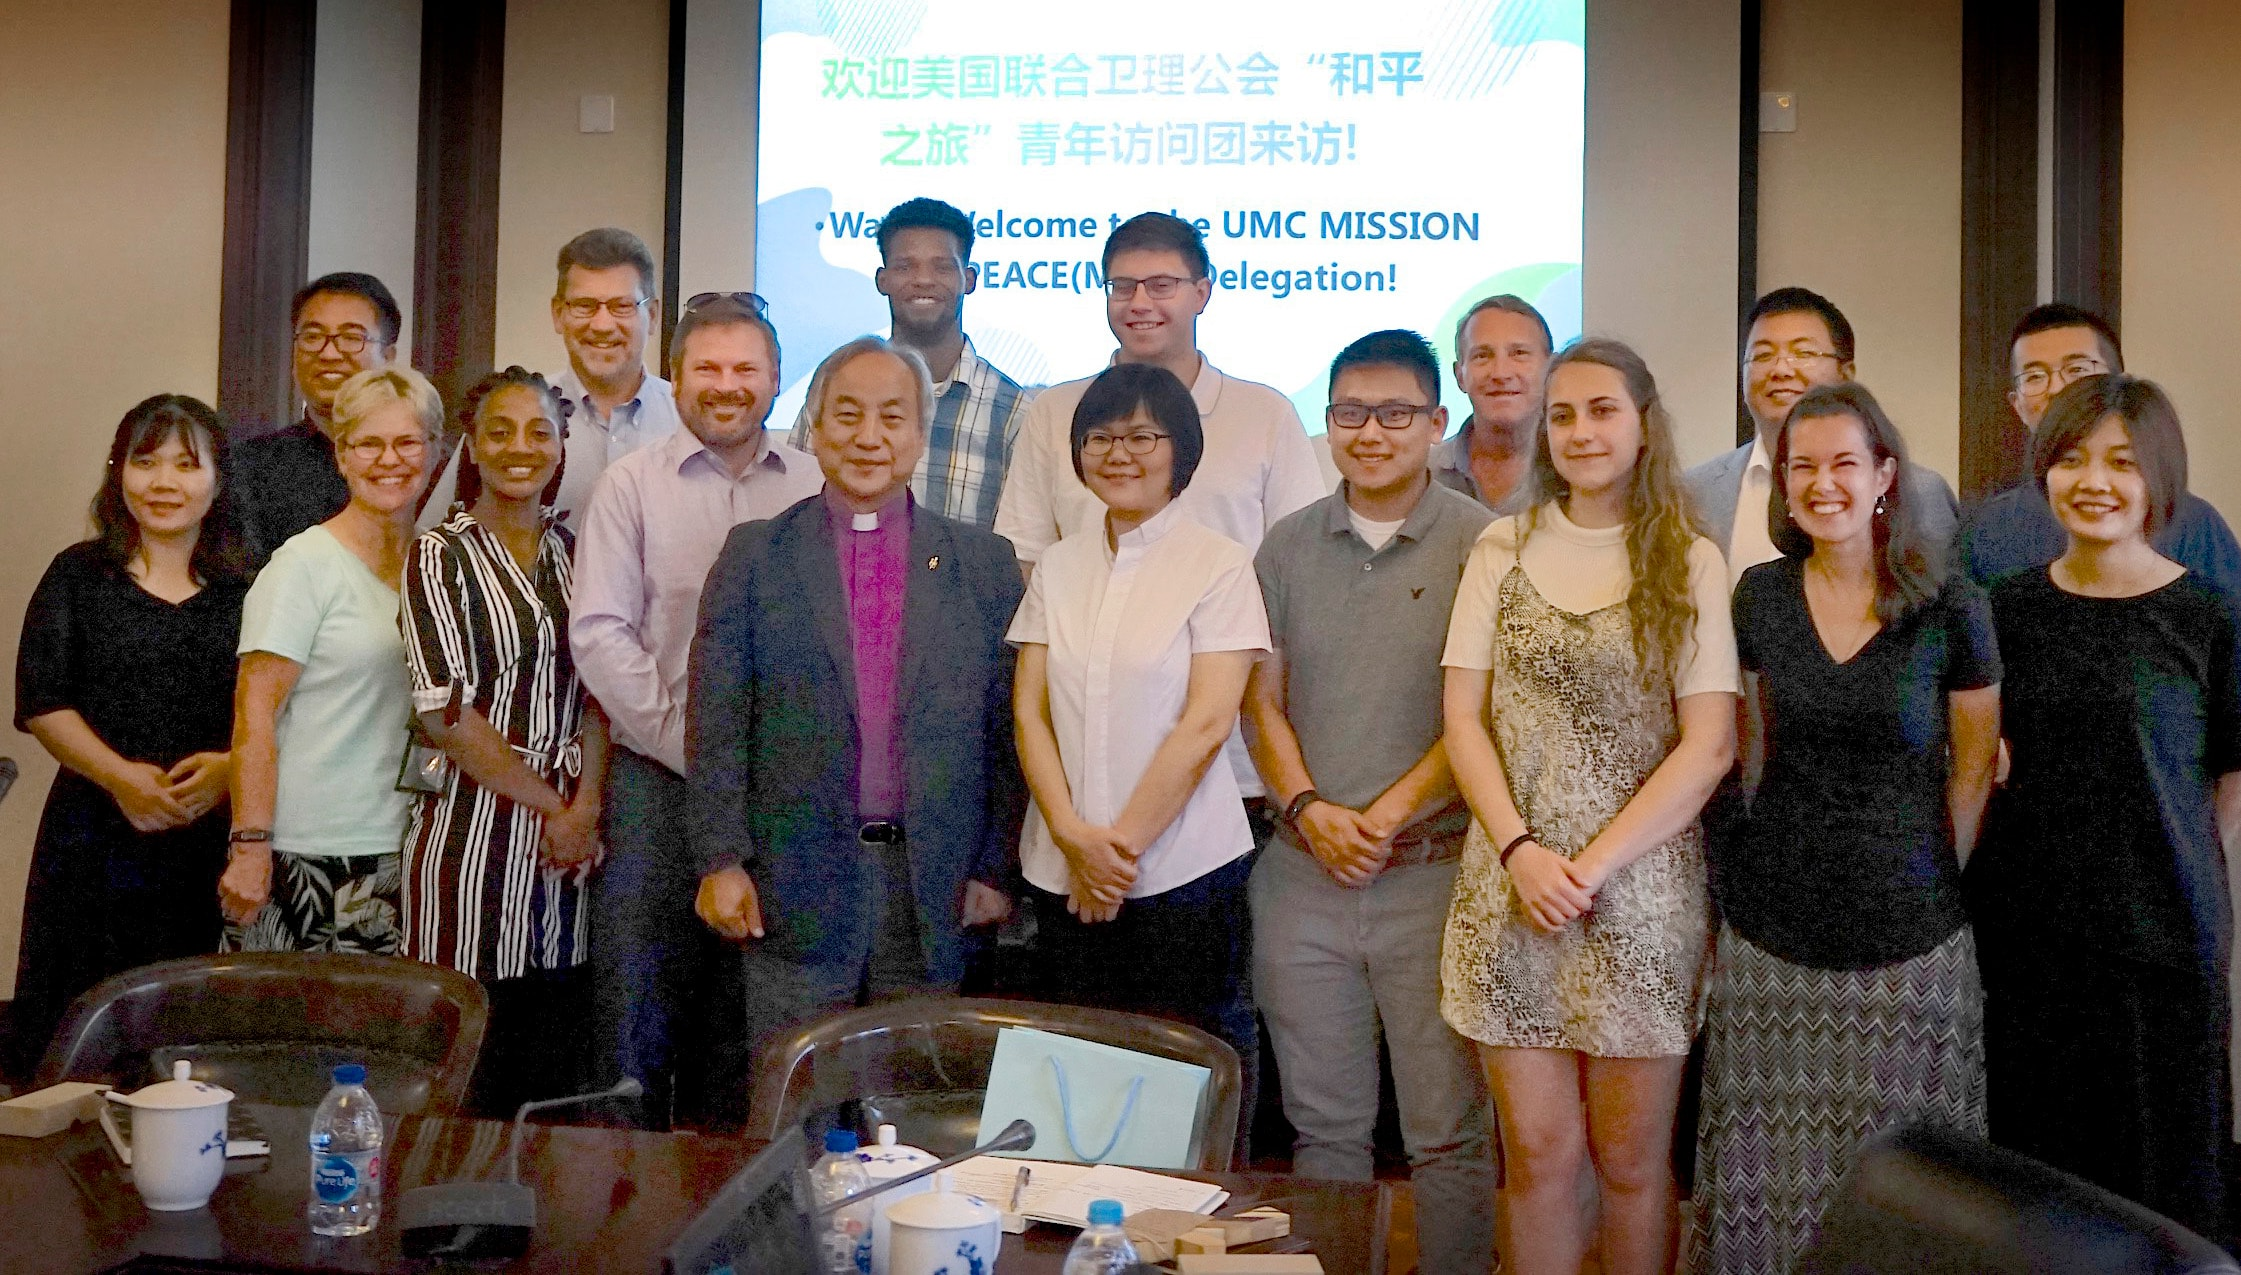 """The United Methodist Volunteers in Mission team, with their hosts at the China Christian Council in Shanghai. Their journey, known as """"Discover… Mission China,"""" was led and organized by the Rev. David and Christy Newhouse of the Michigan Conference. Photo courtesy of the Rev. David Newhouse."""